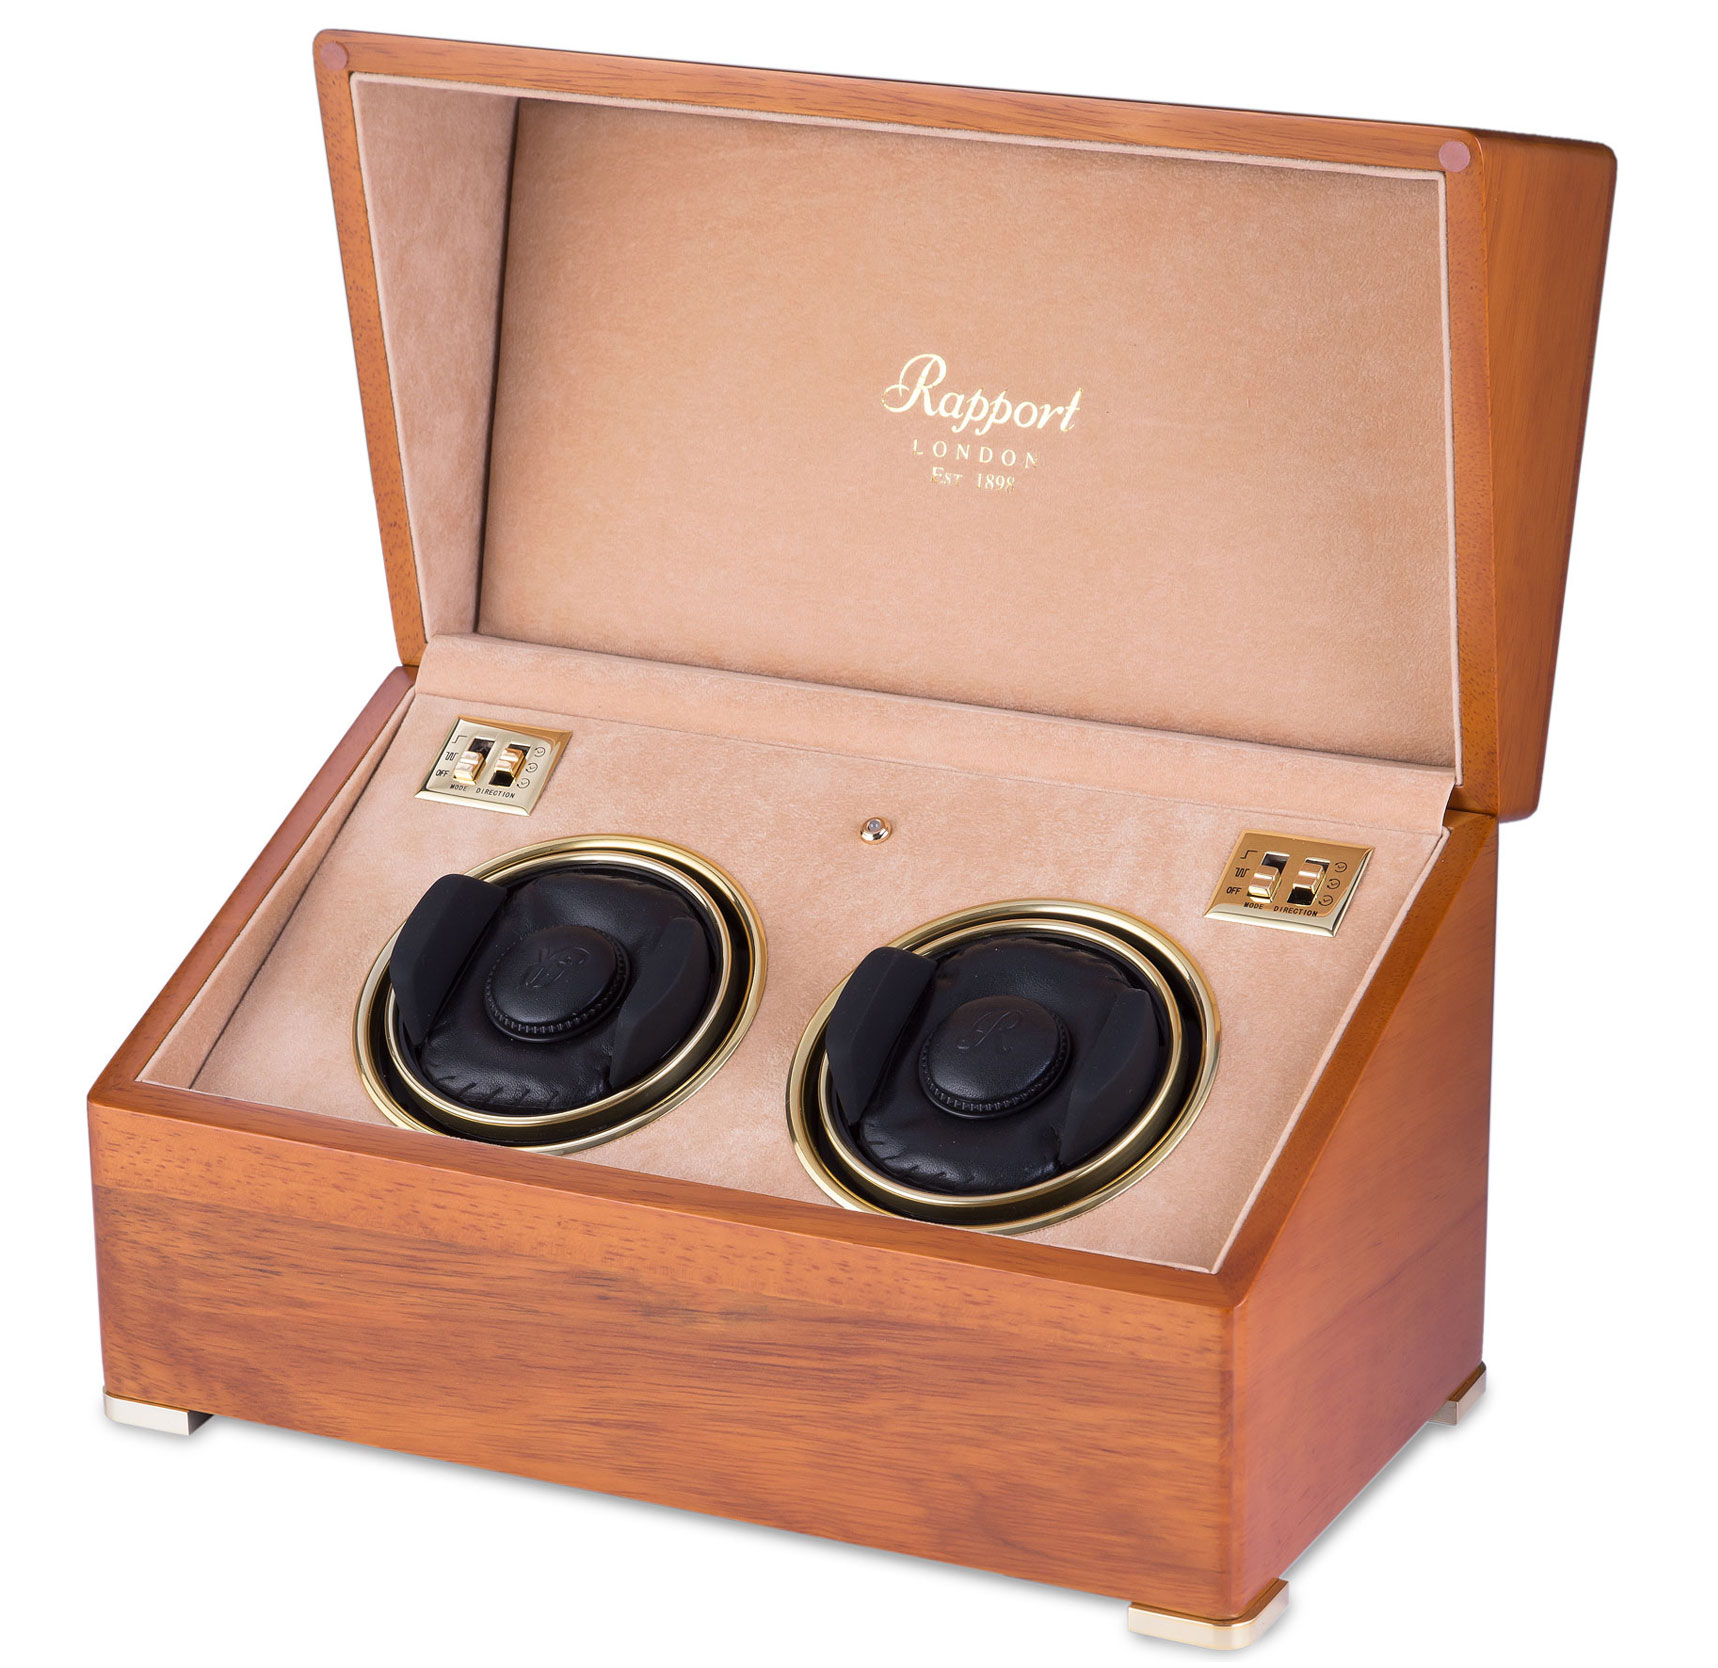 Perpetua II Duo Watch Winder